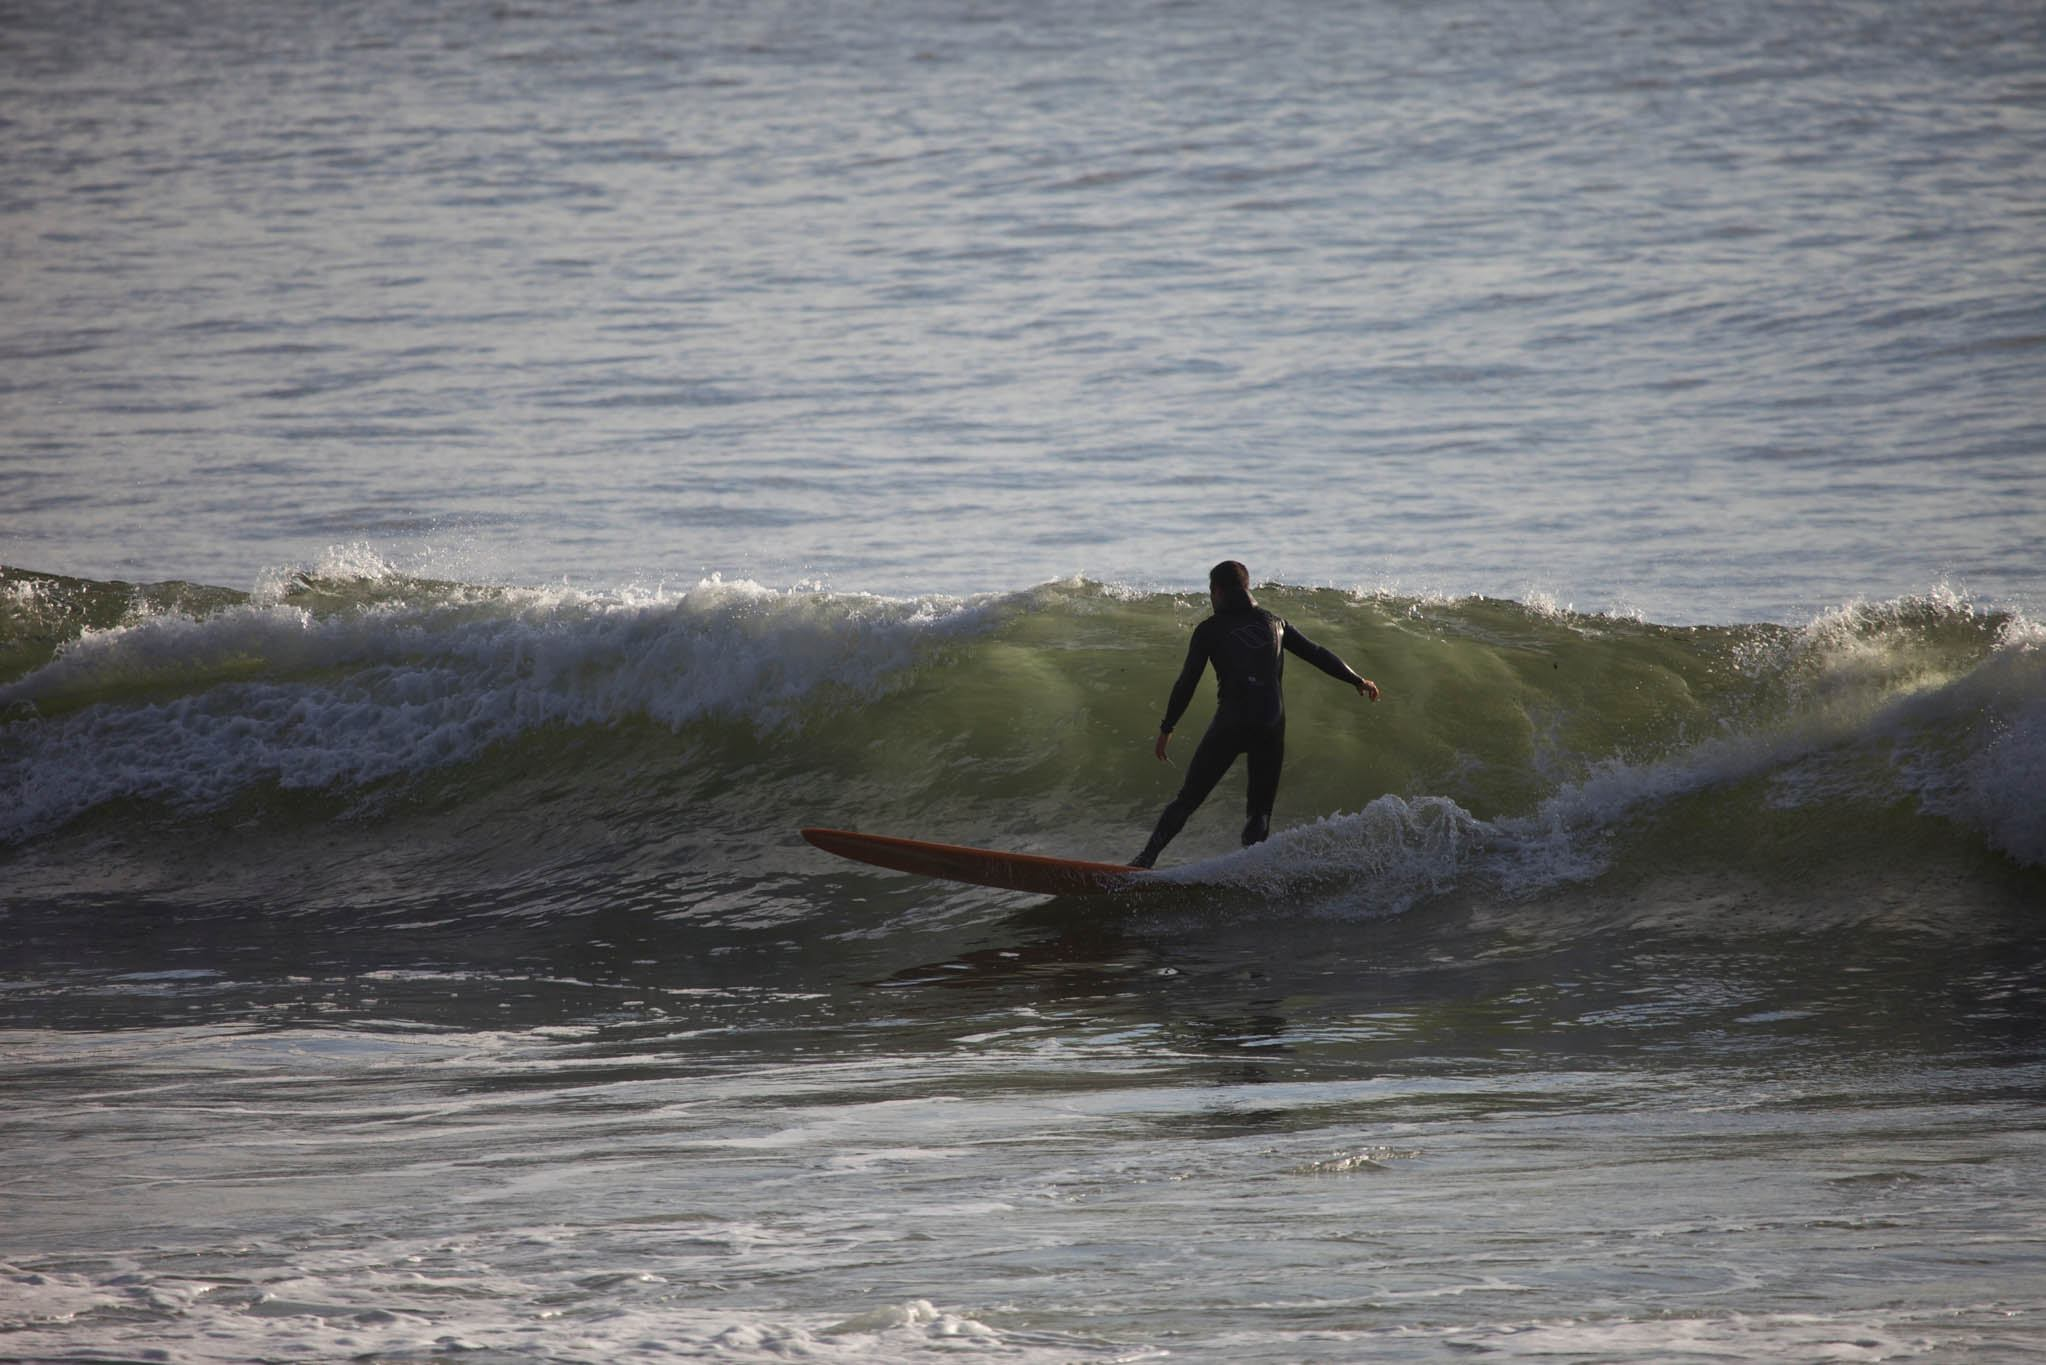 Surfing in Cannon Beach, Oregon